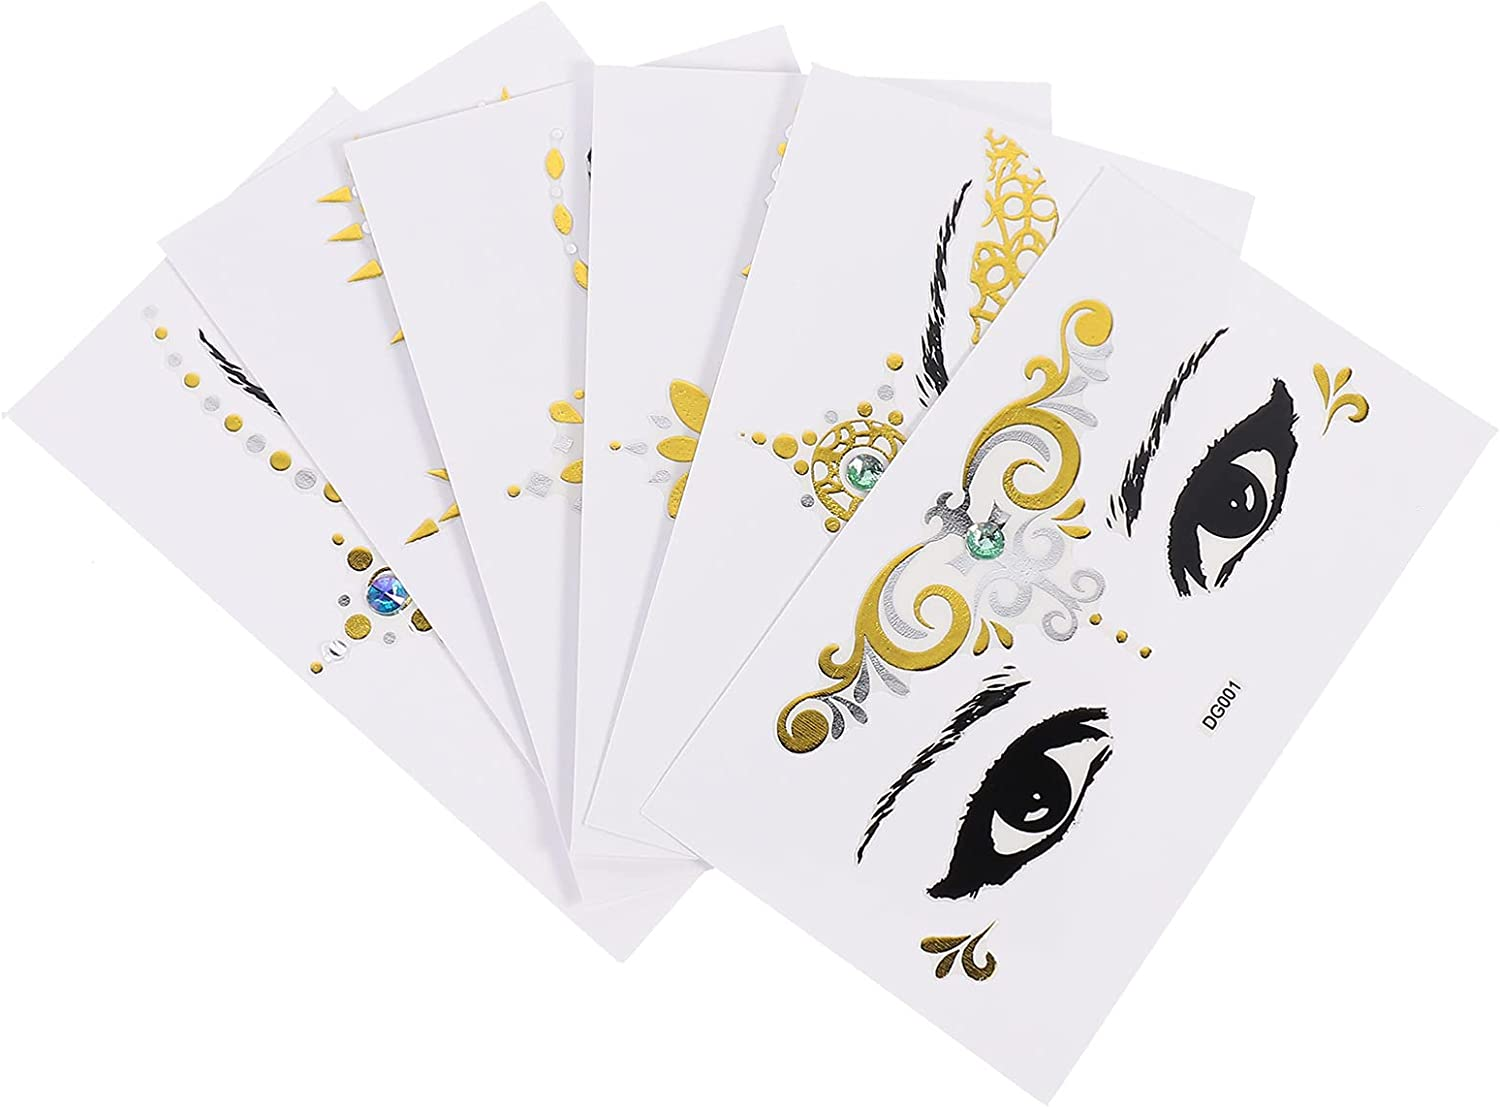 Lurrose 6 Sheets Face Tattoo Transfer Tat Gold Louisville-Jefferson County Mall Max 70% OFF Sticker Temporary